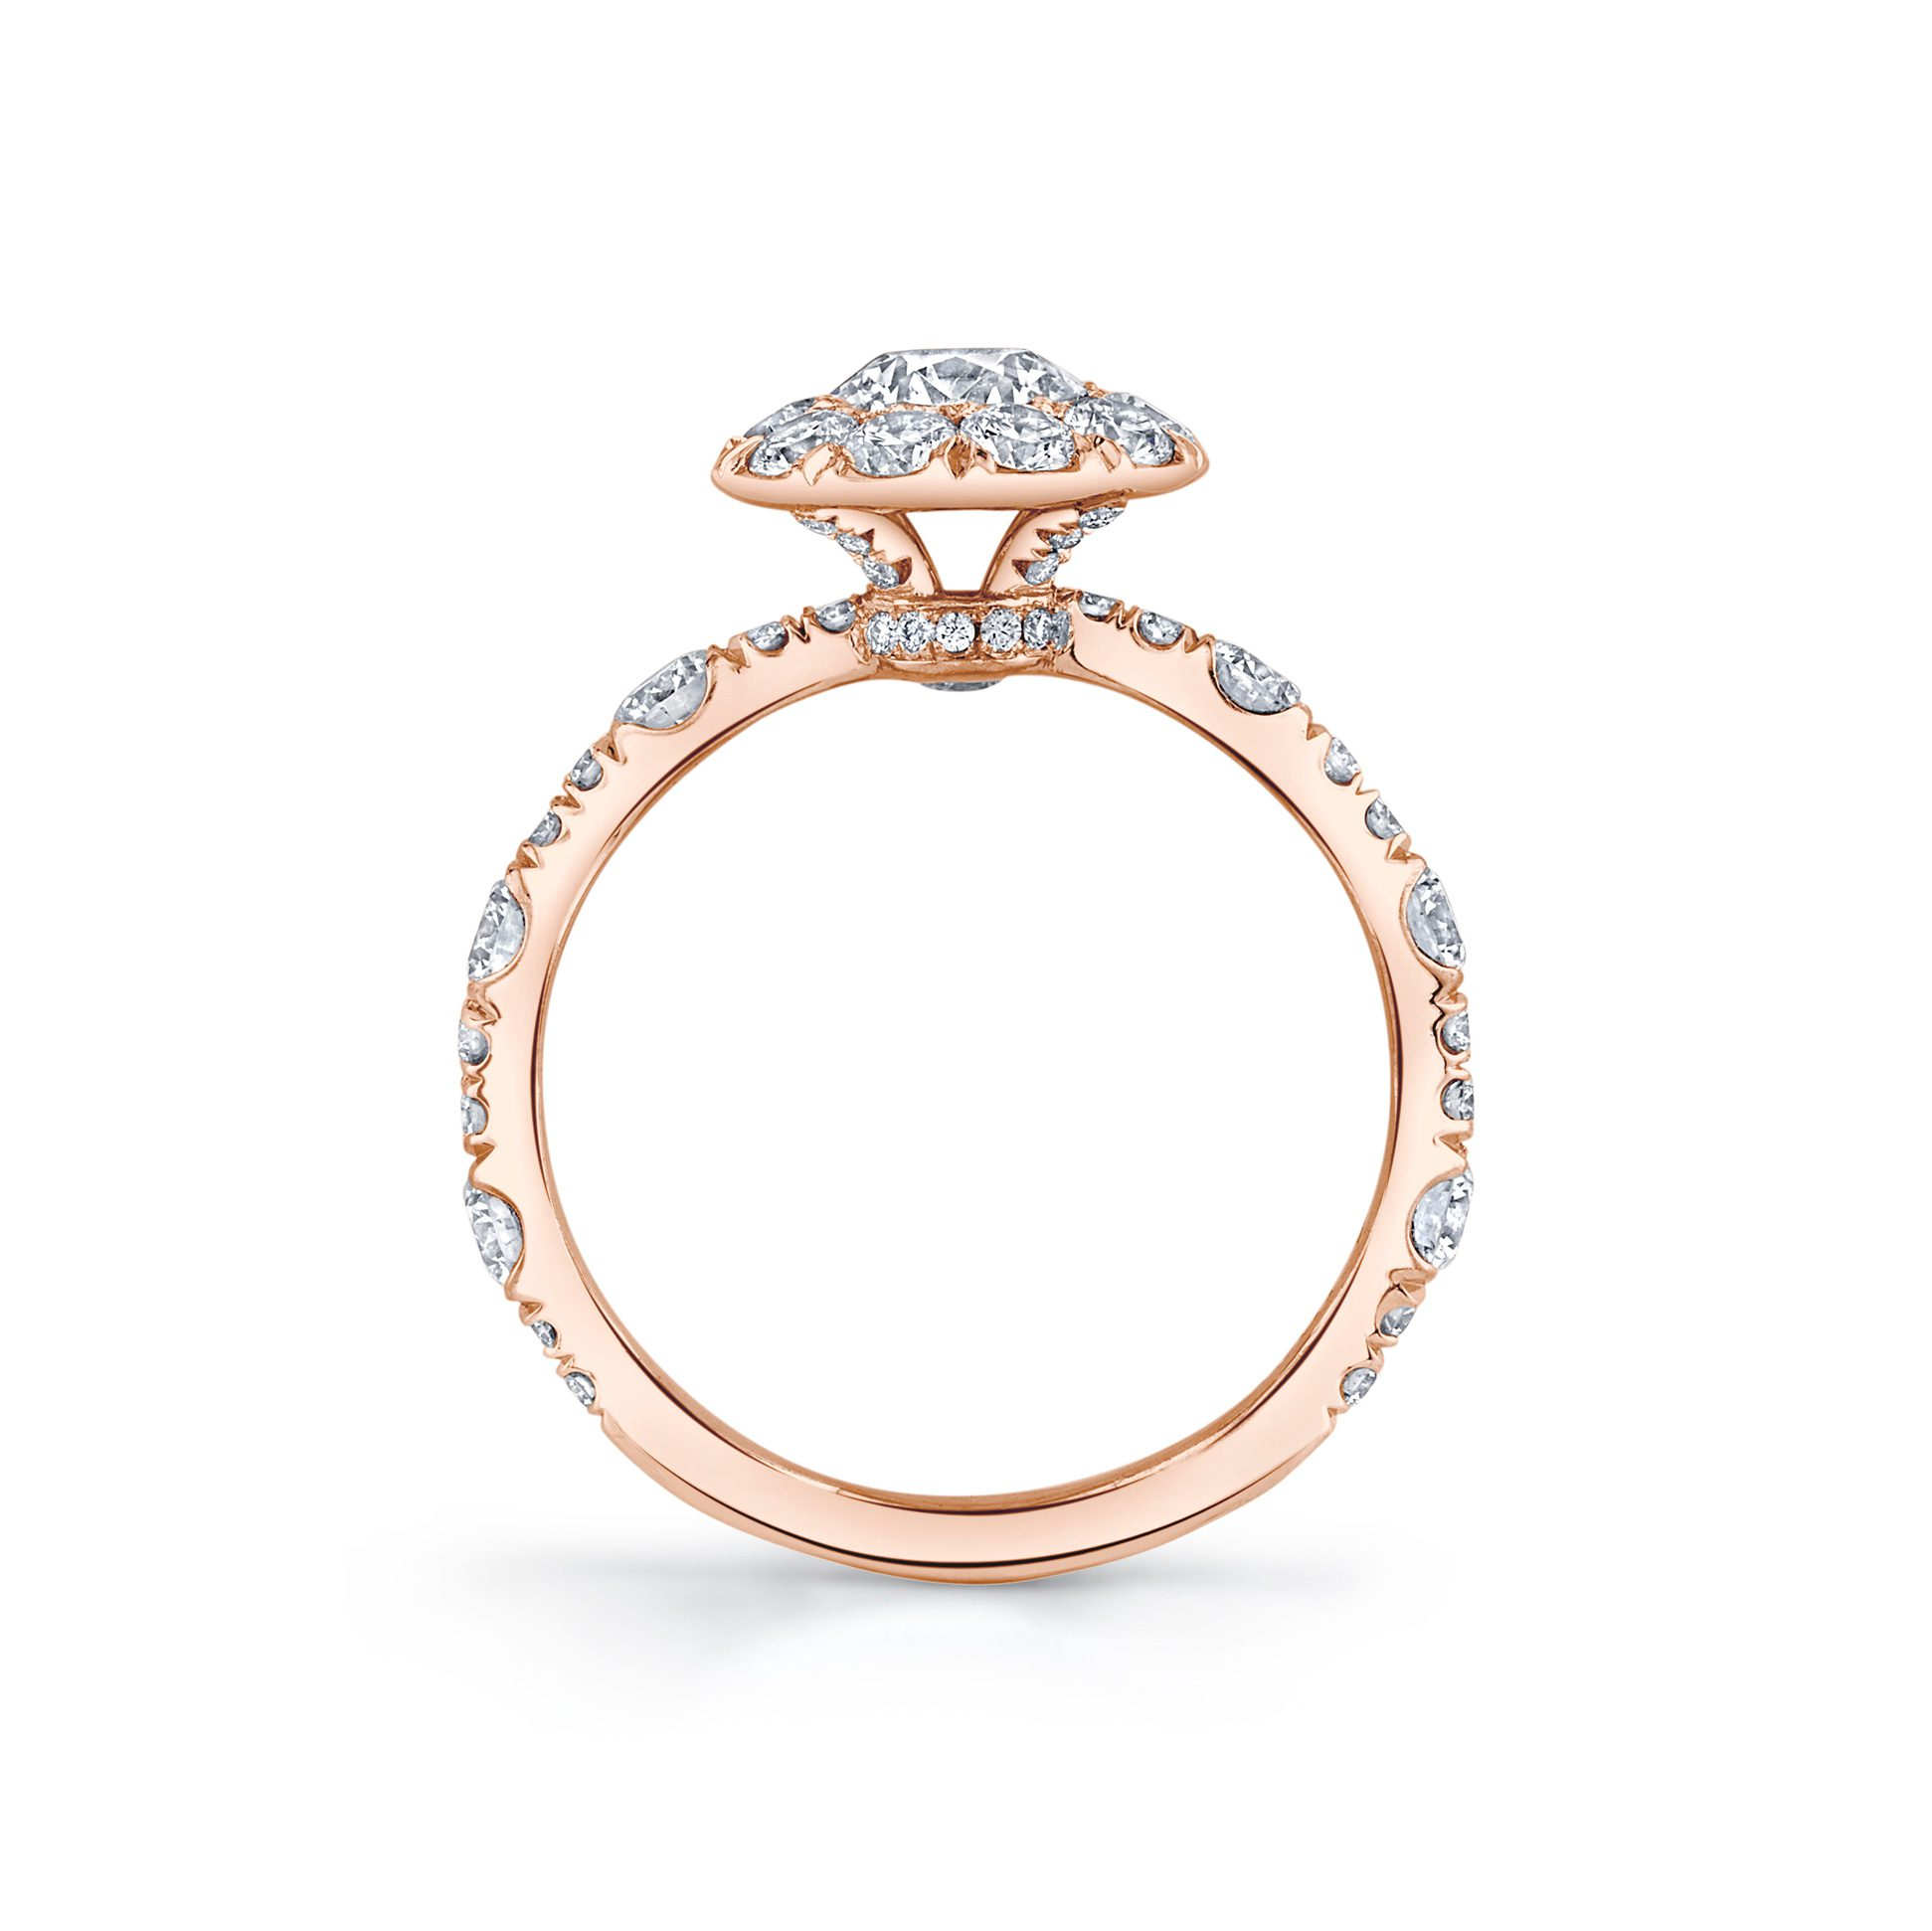 Yvonne Floating Round Brilliant Seamless Solitaire® Engagement Ring 18k Rose Gold Standing View by Oui by Jean Dousset